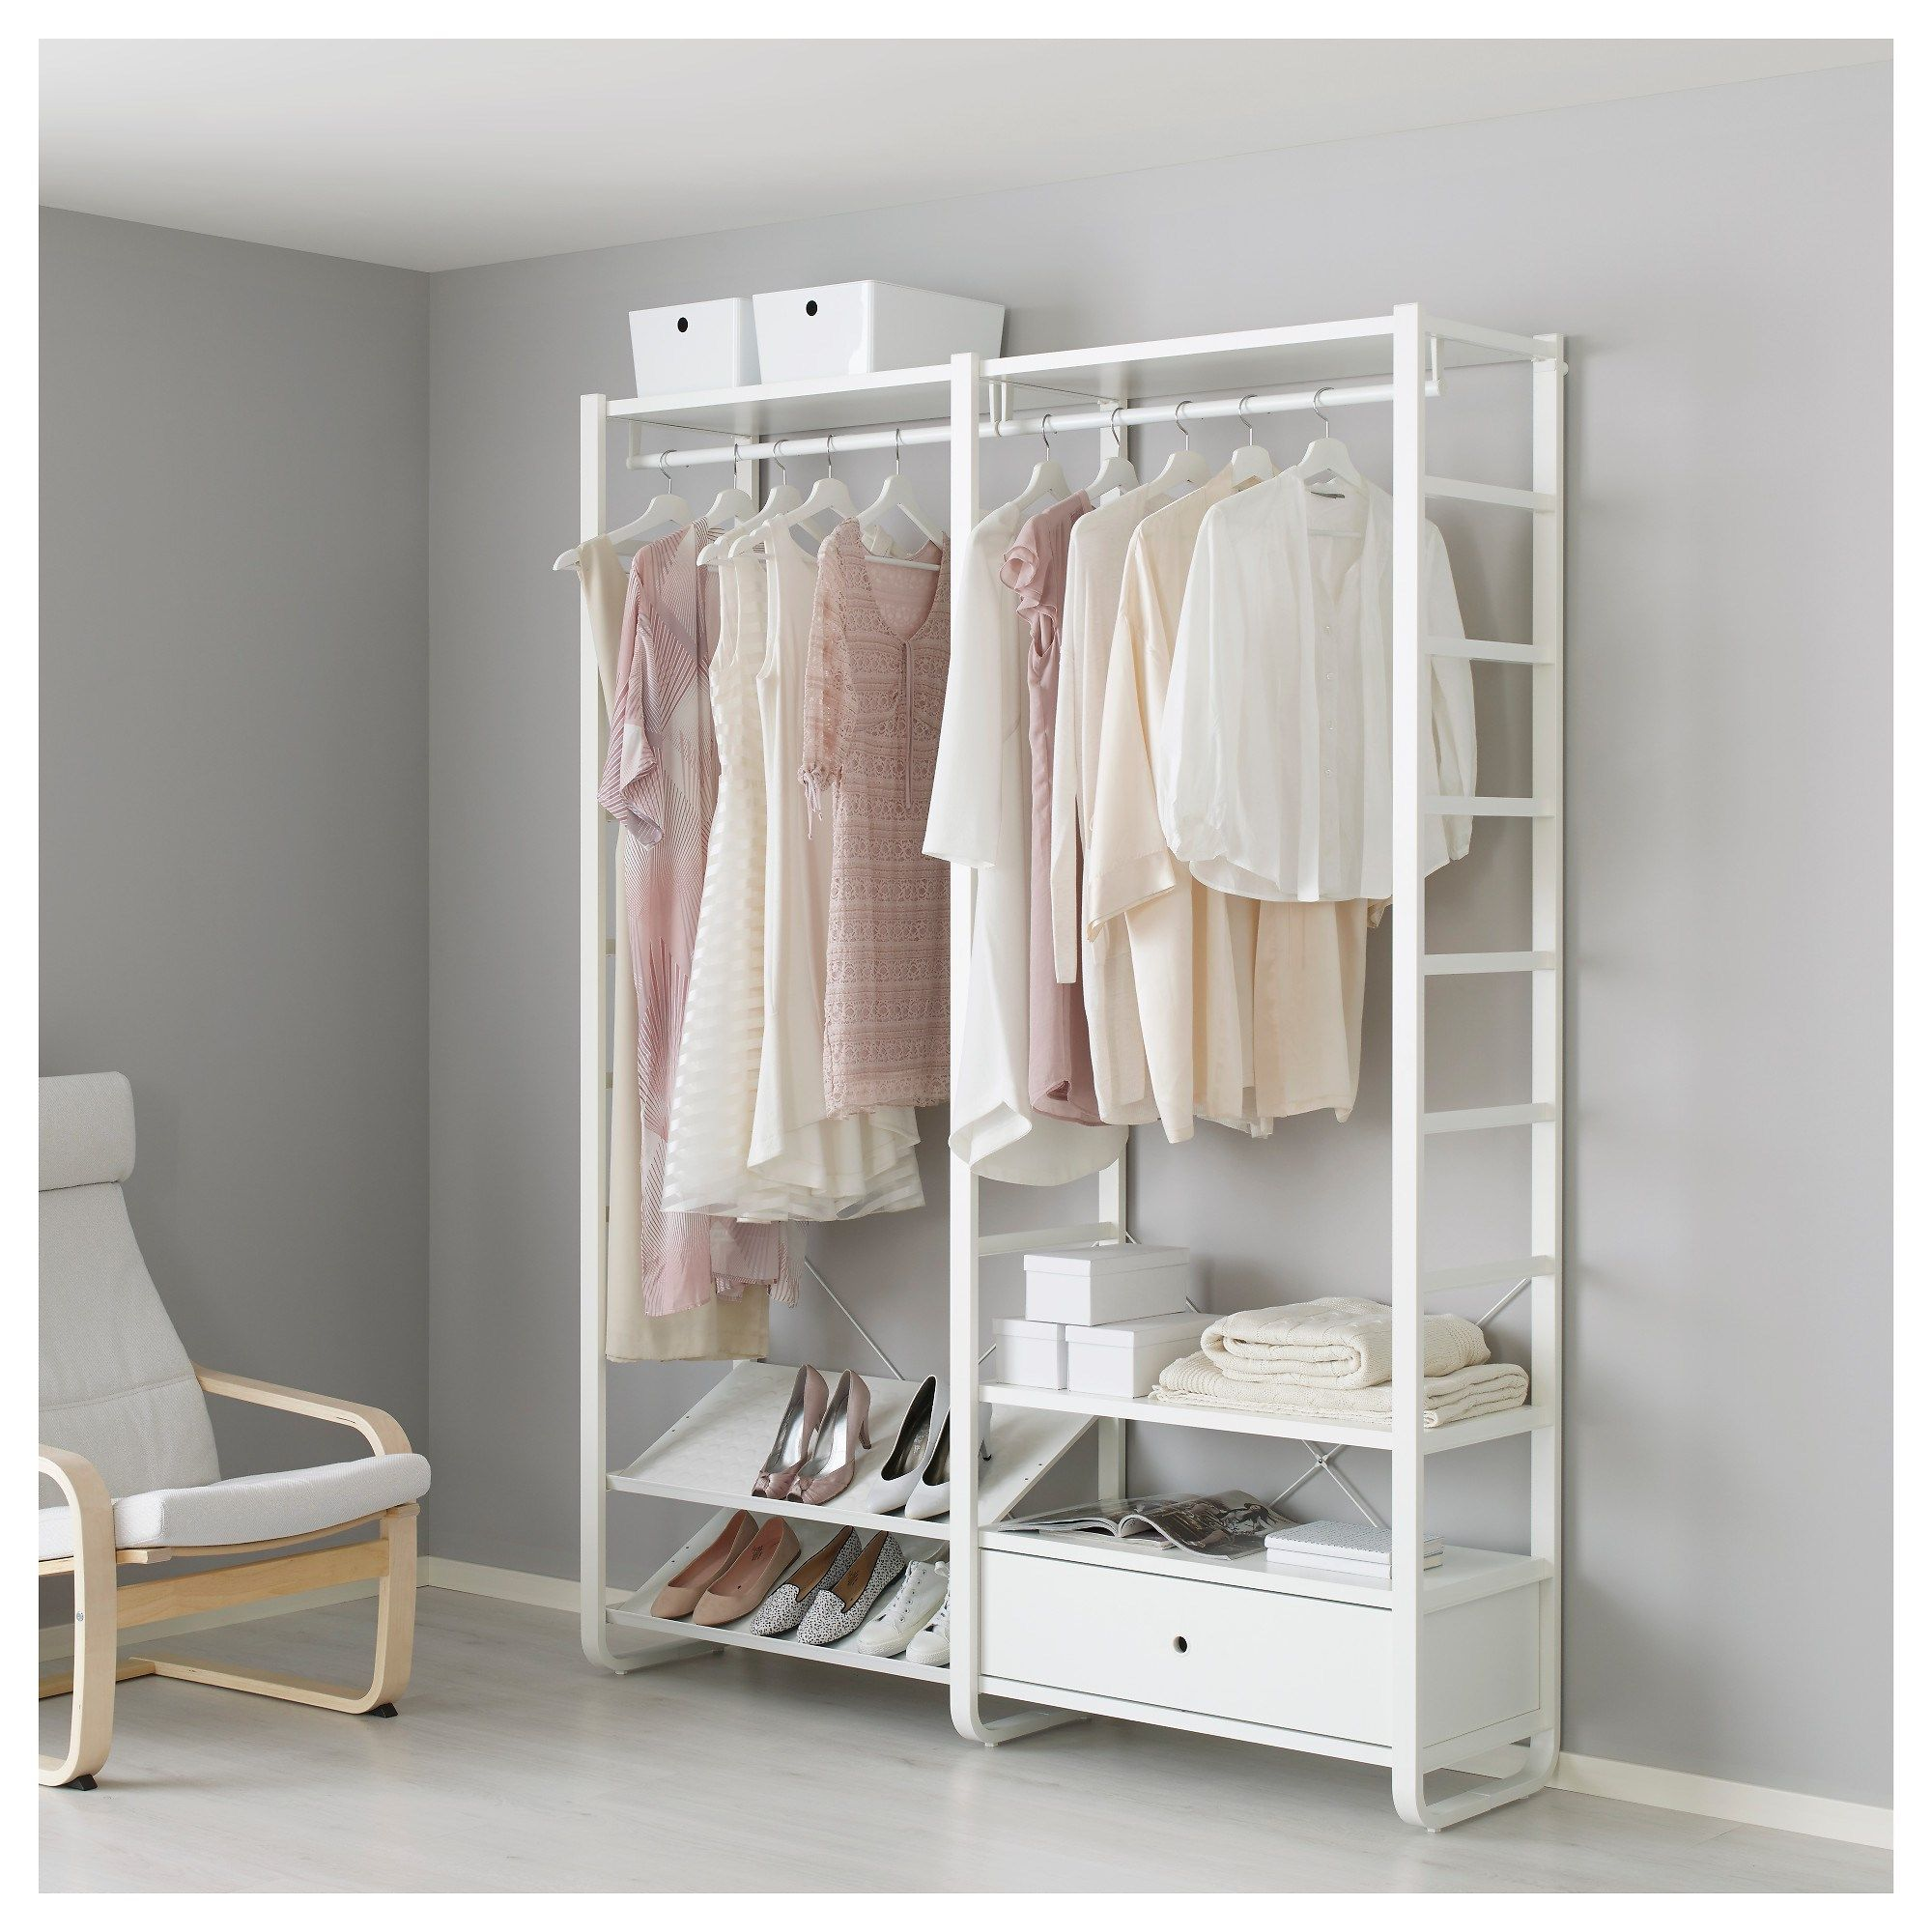 Elvarli open storage unit white 165x40x216 cm ikea for Big w bedroom storage